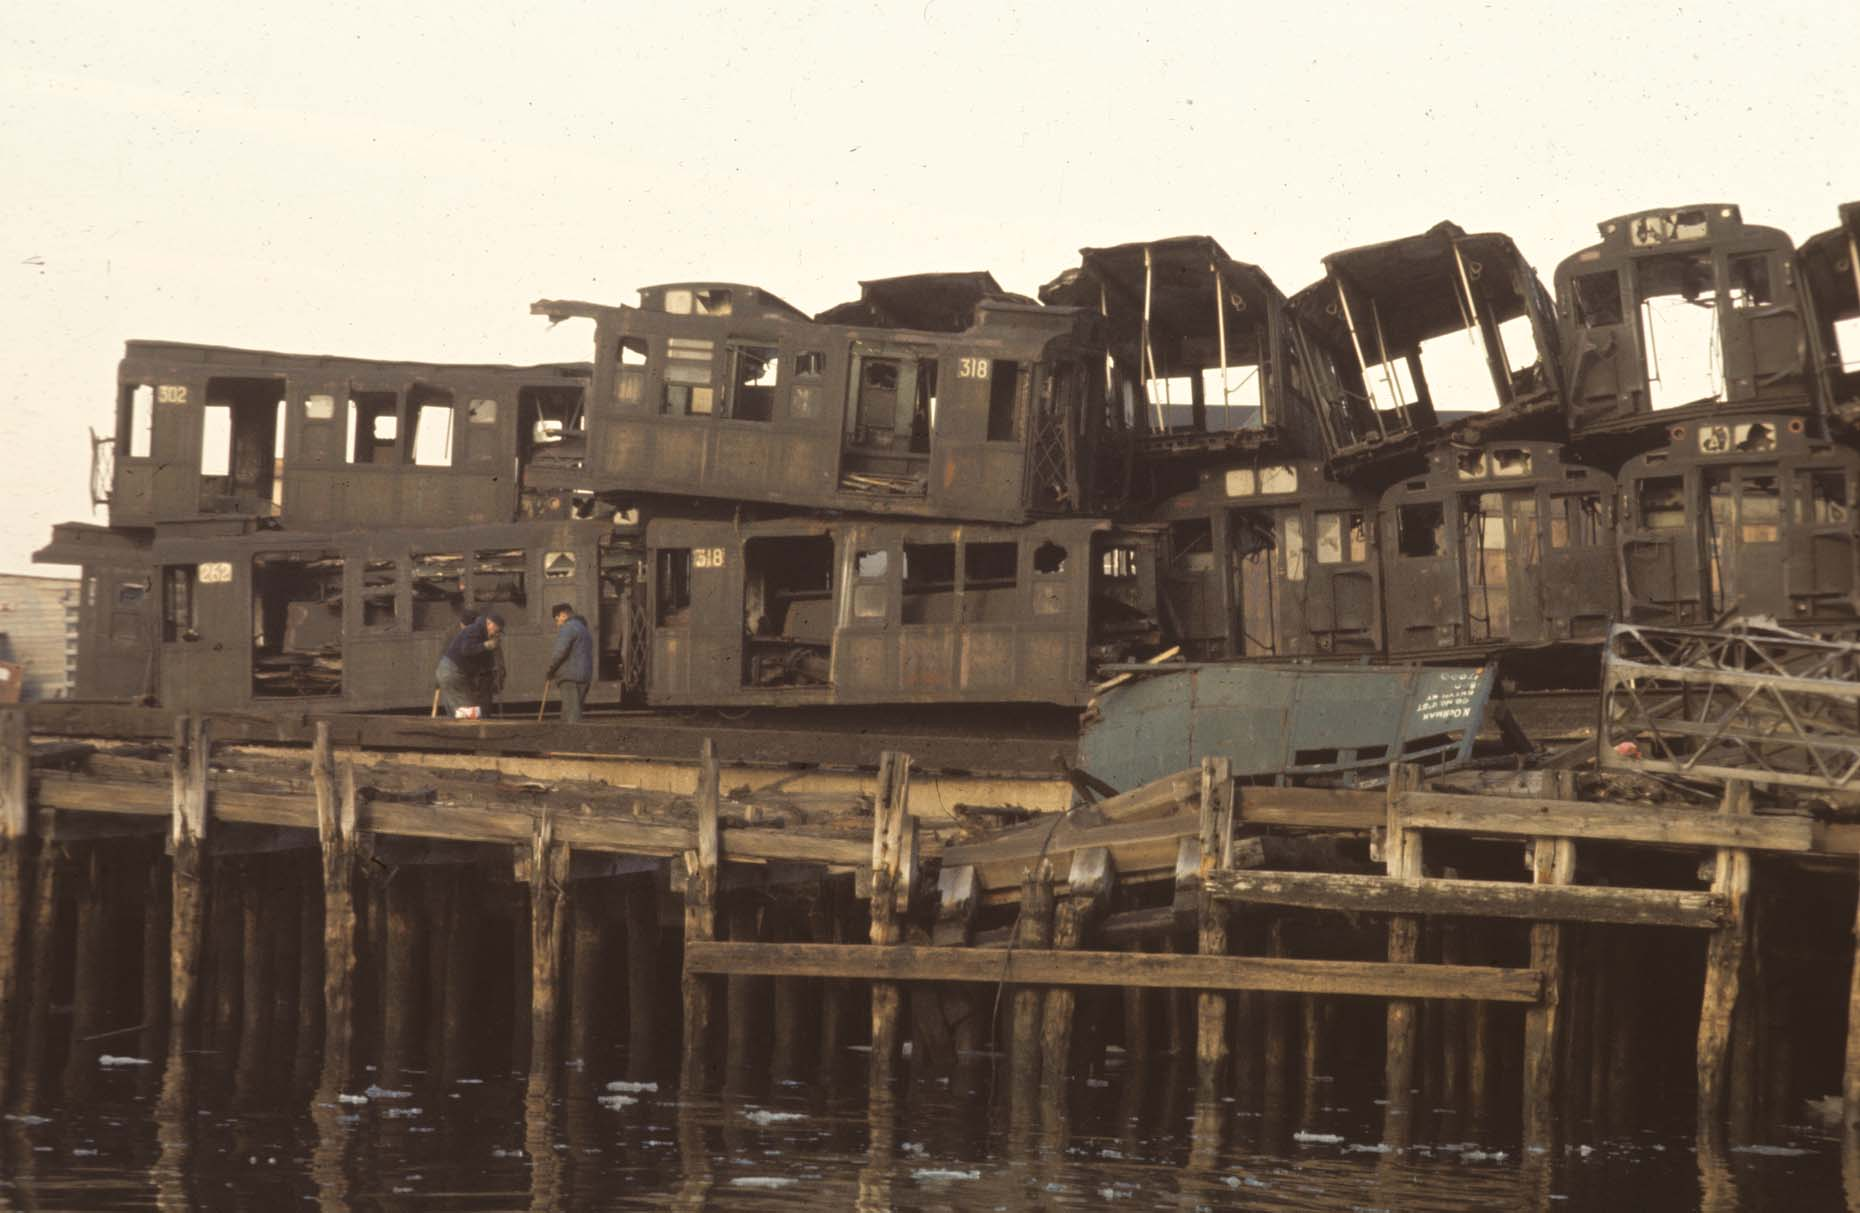 60_Pier, South Brooklyn, 1970_